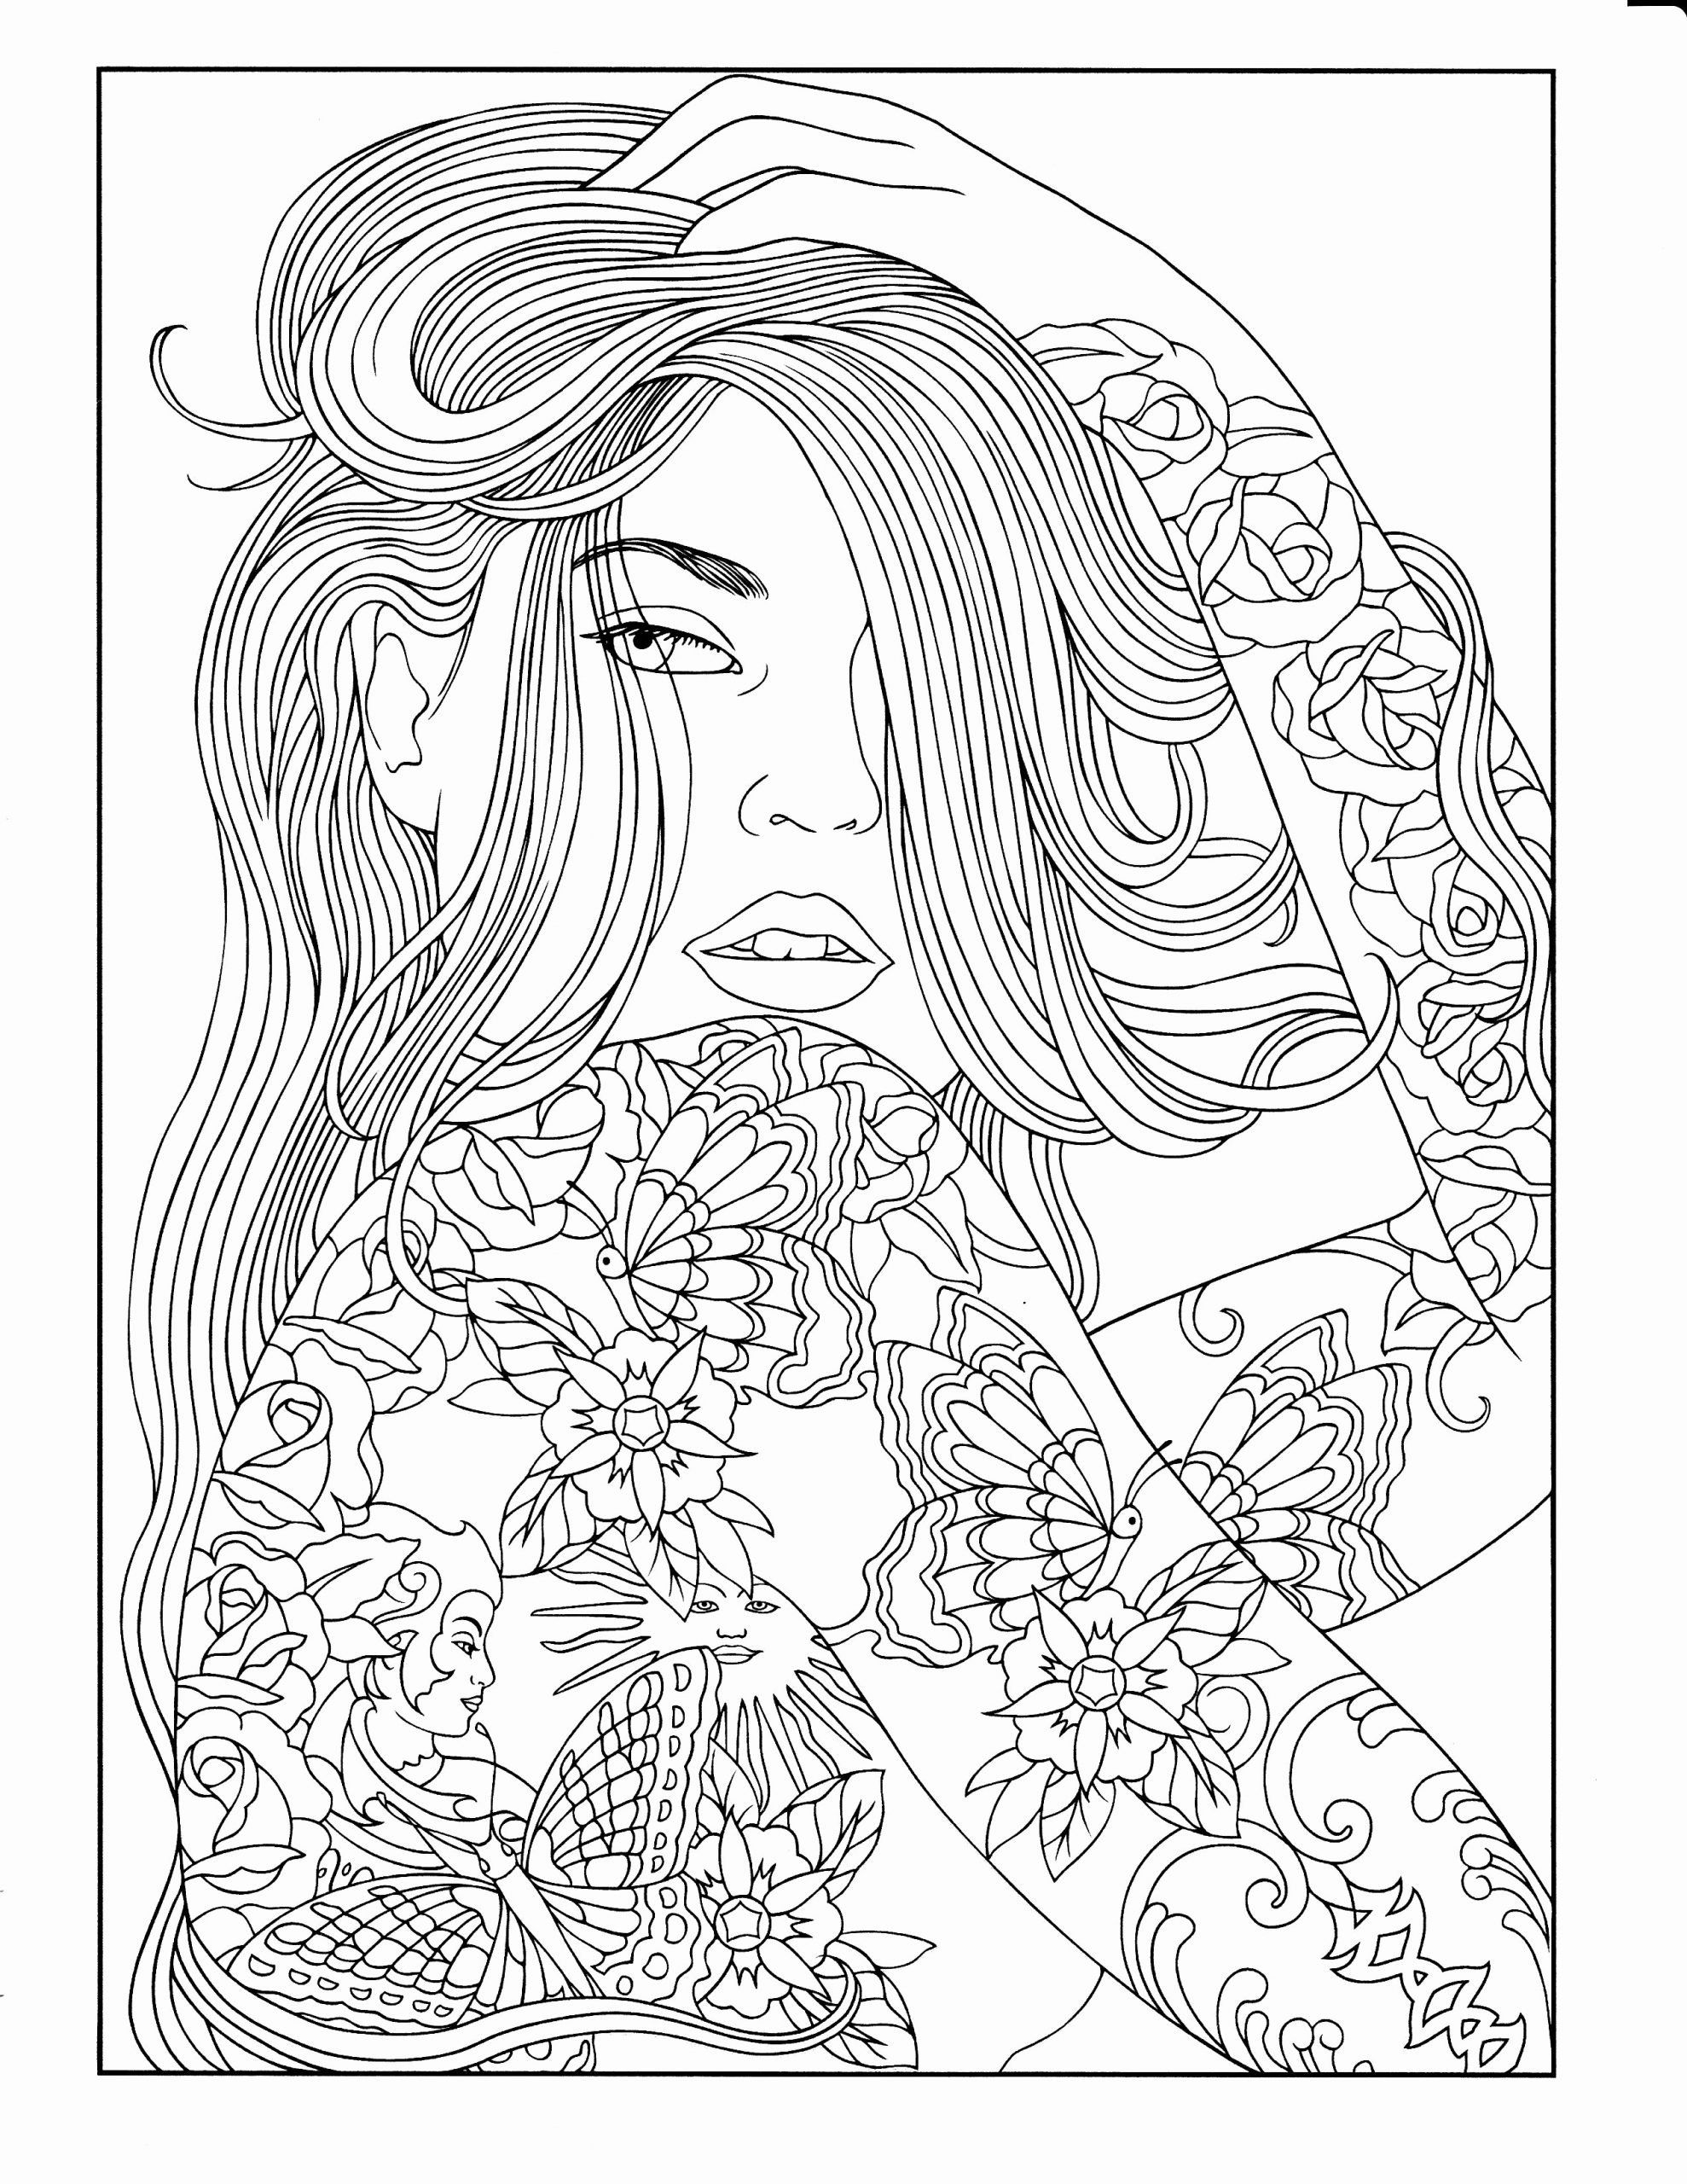 People Coloring Pages For Adults Inspirational Printable